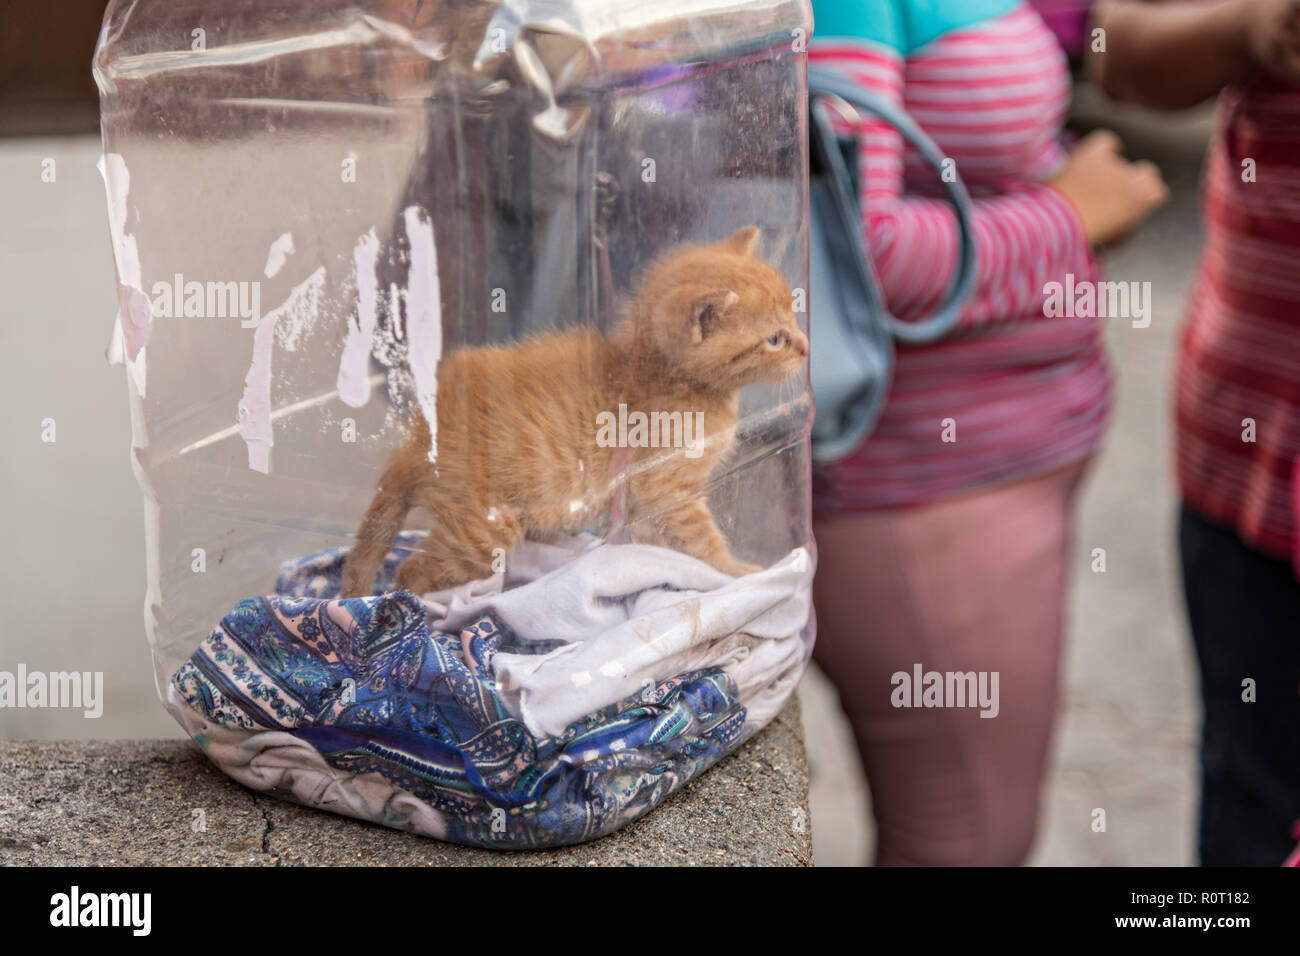 A young kitten being carried in a plastic food container in San Miguel de Allende, Mexico. - Stock Image